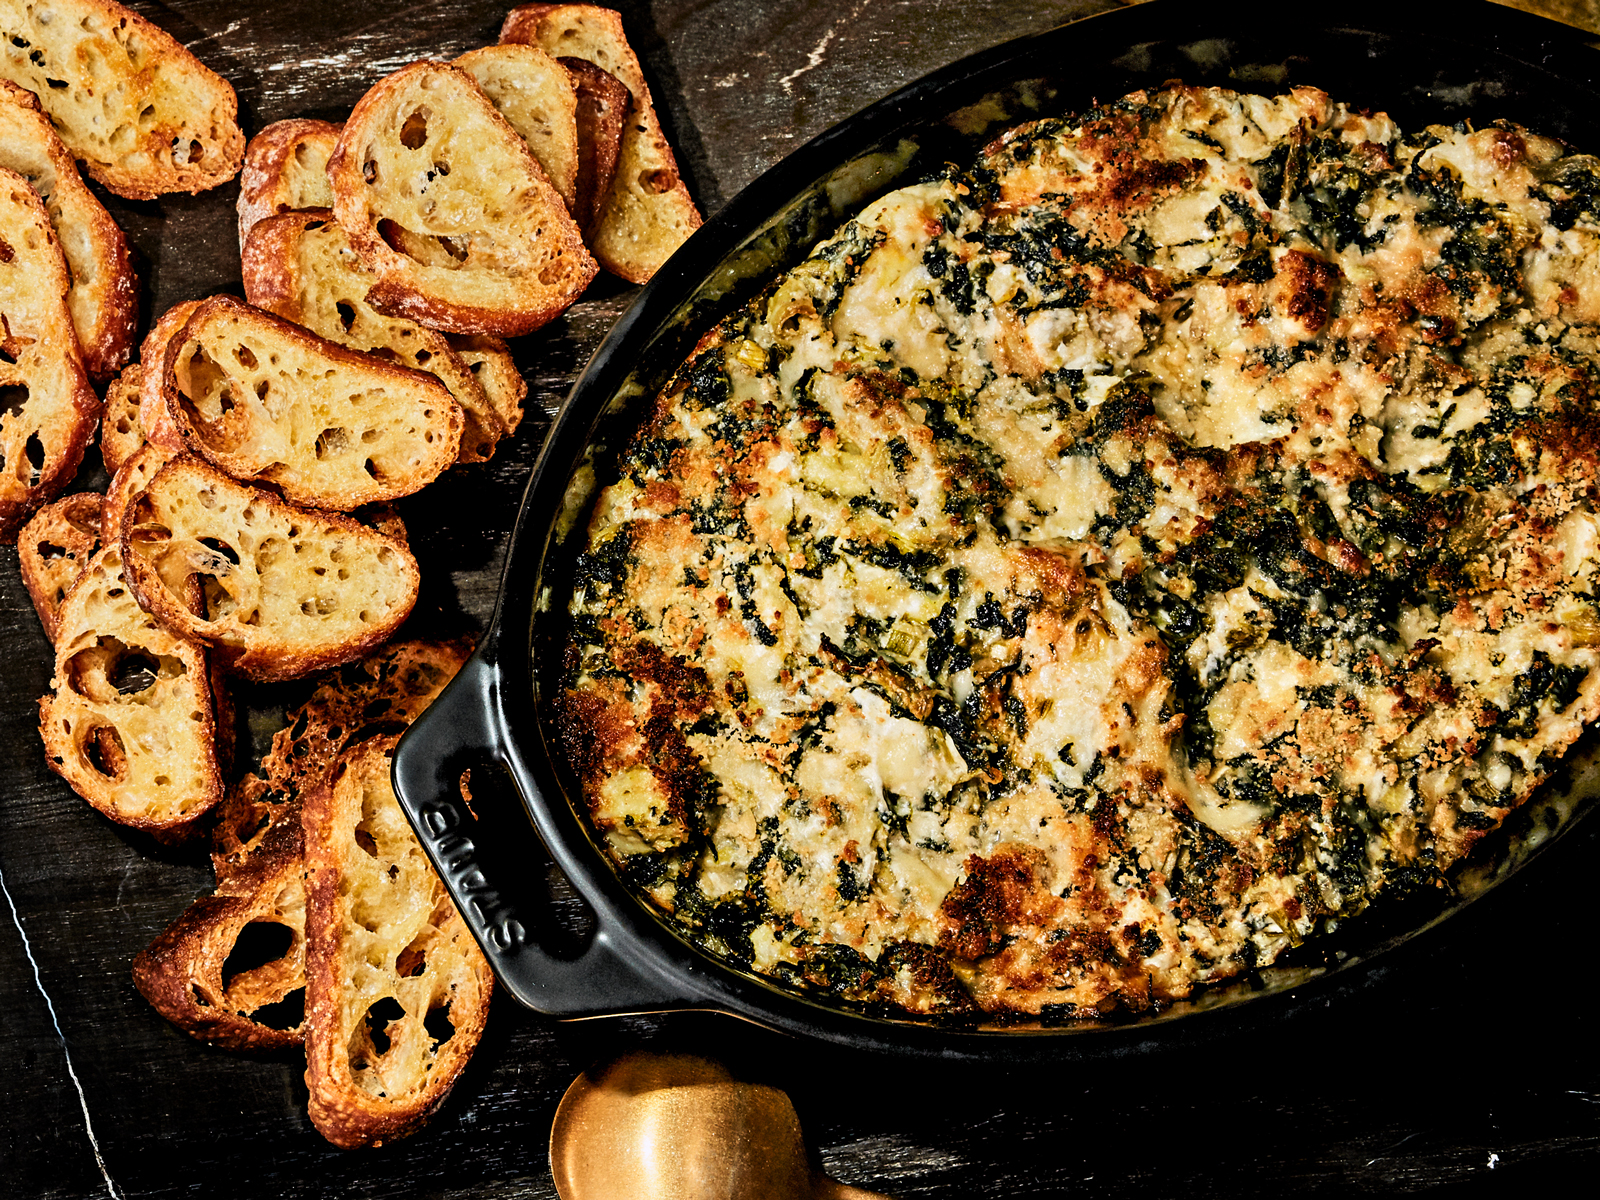 Warm Spinach-Artichoke Dip Recipe